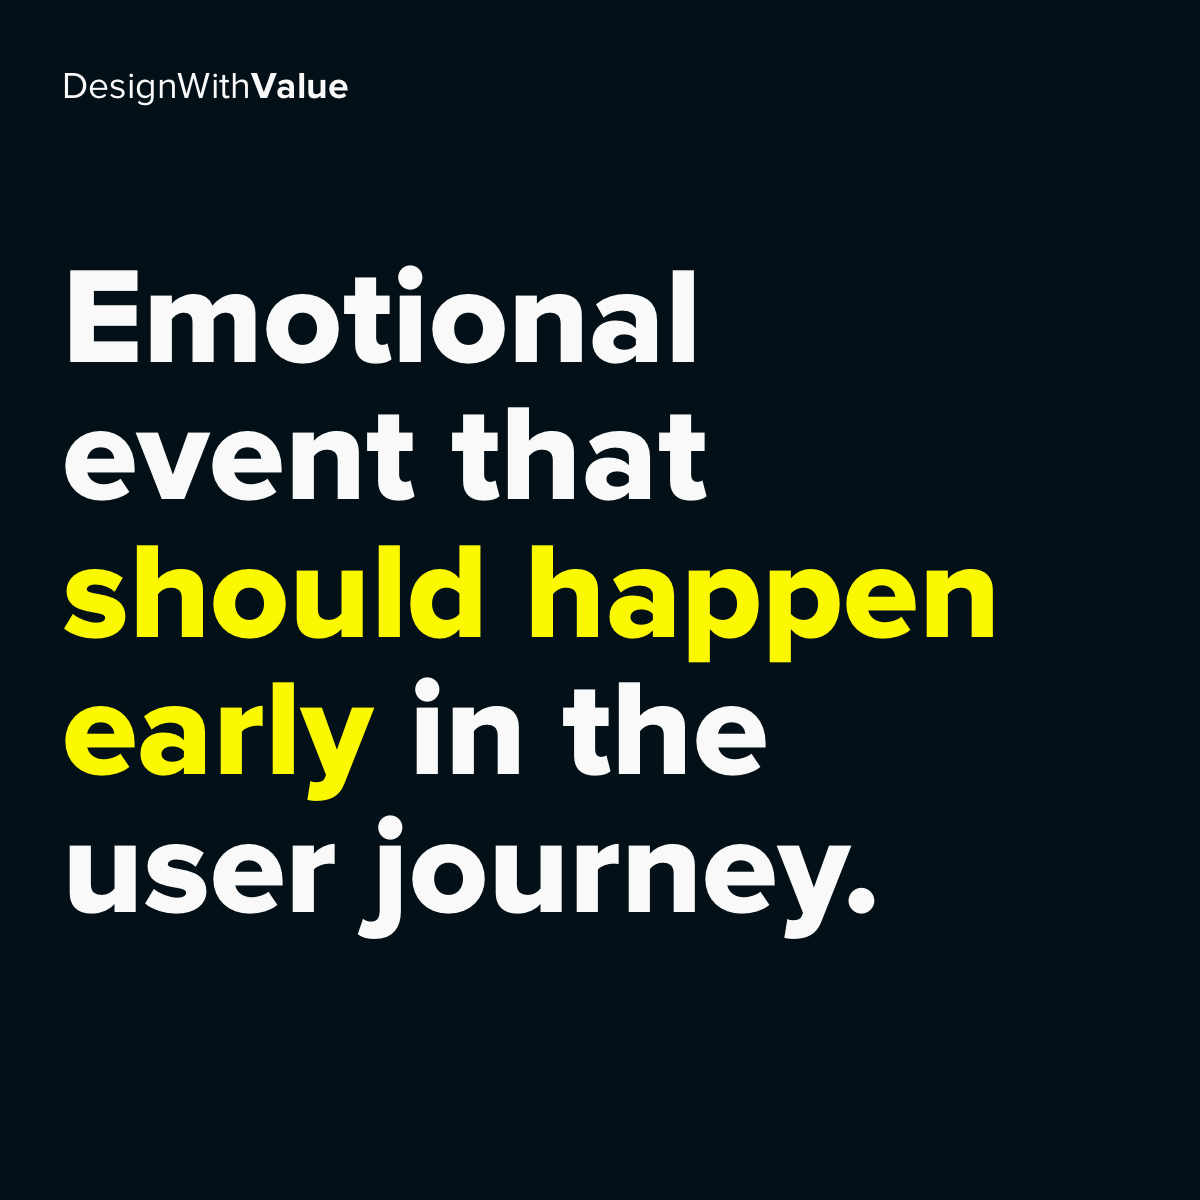 Emotional event that should happen early in the user journey.